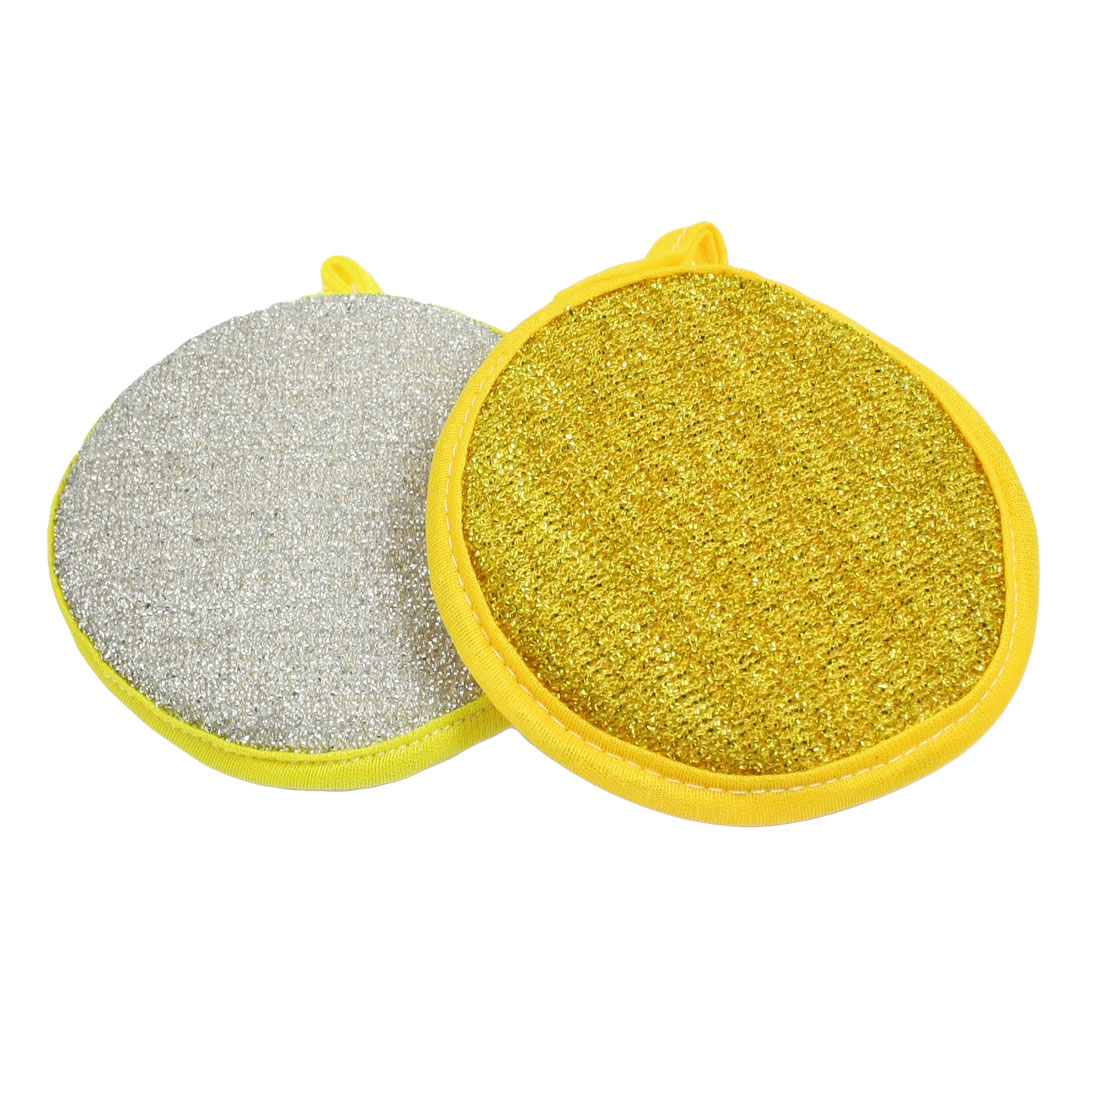 2 Pcs Round Shaped Dish Metallic Scrub Pad Cleaner for Home Kitchen